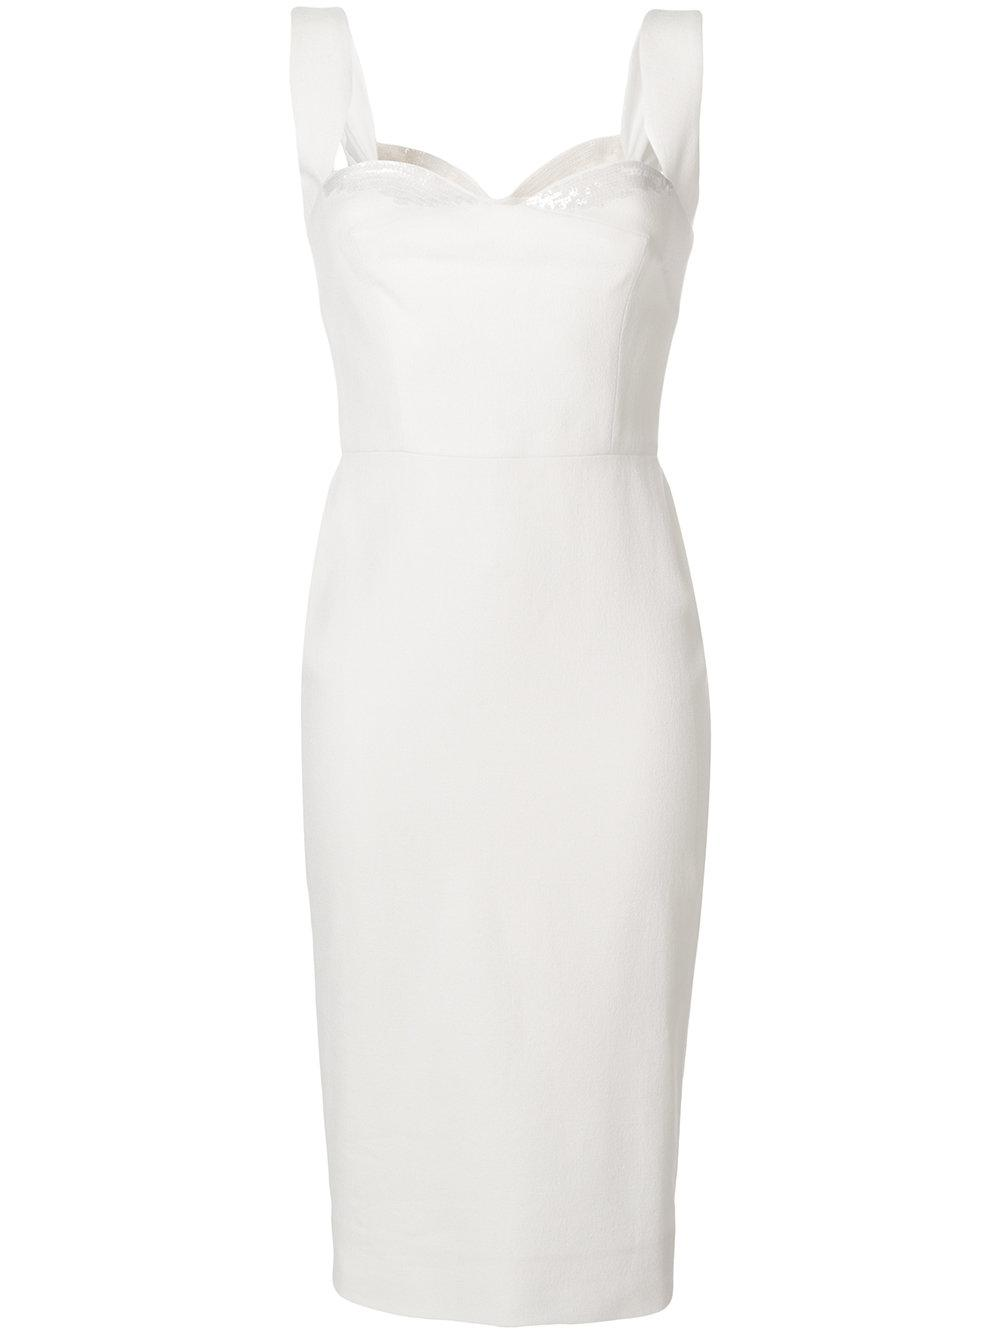 Sequin Strap Sweetheart Neck Fitted Dress Item # DRFIT6458B